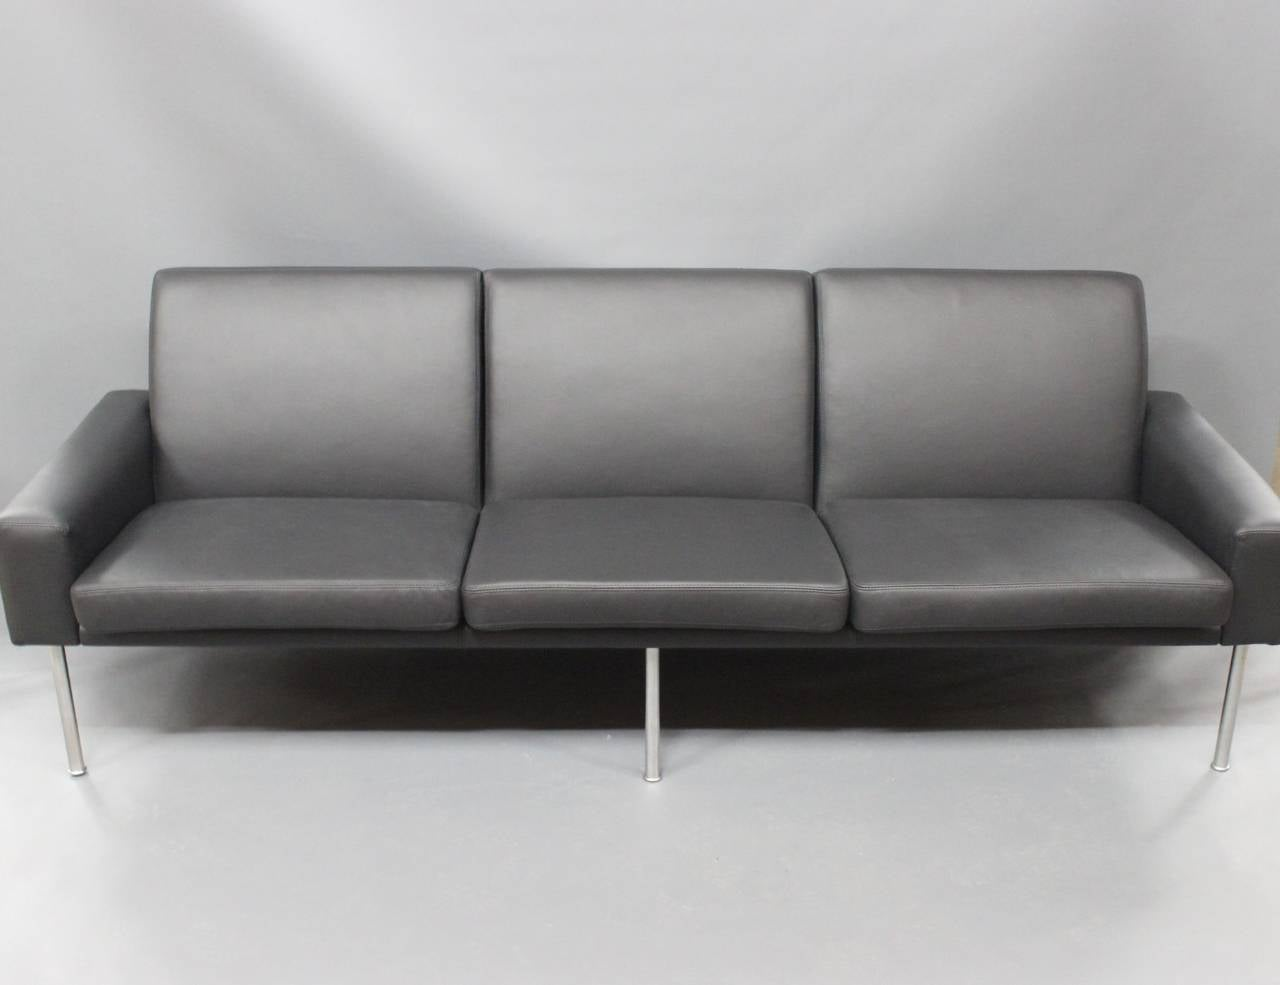 hans j wegner sofa model 34 3 in black savanne leather 1960 for sale at 1stdibs. Black Bedroom Furniture Sets. Home Design Ideas